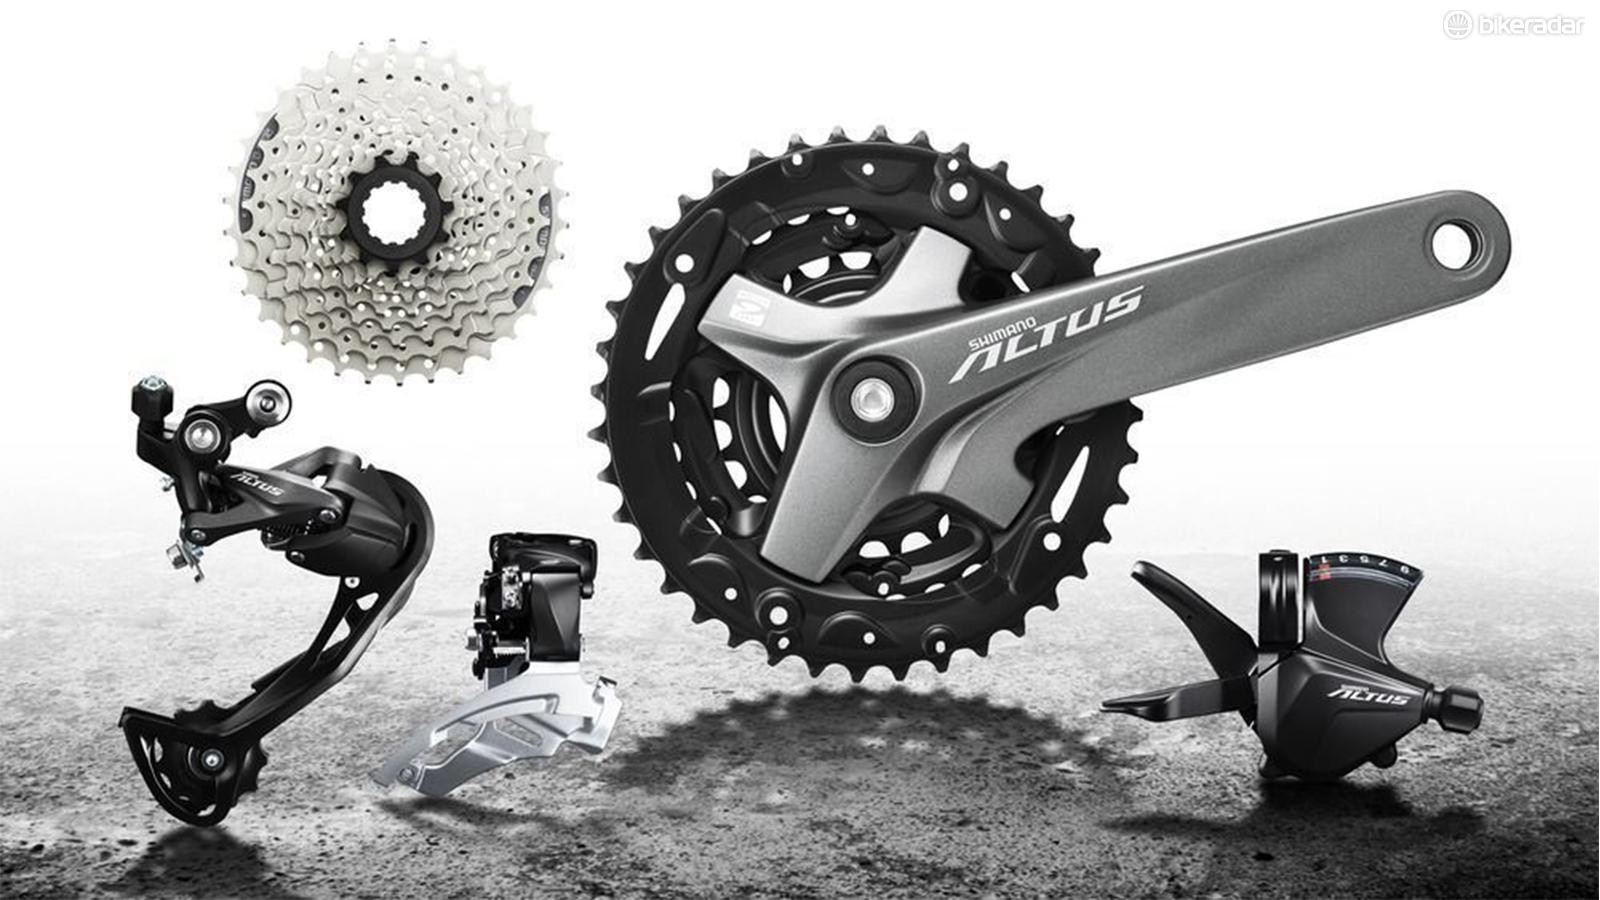 Altus is the group you're likely to find on entry-level mountain bikes